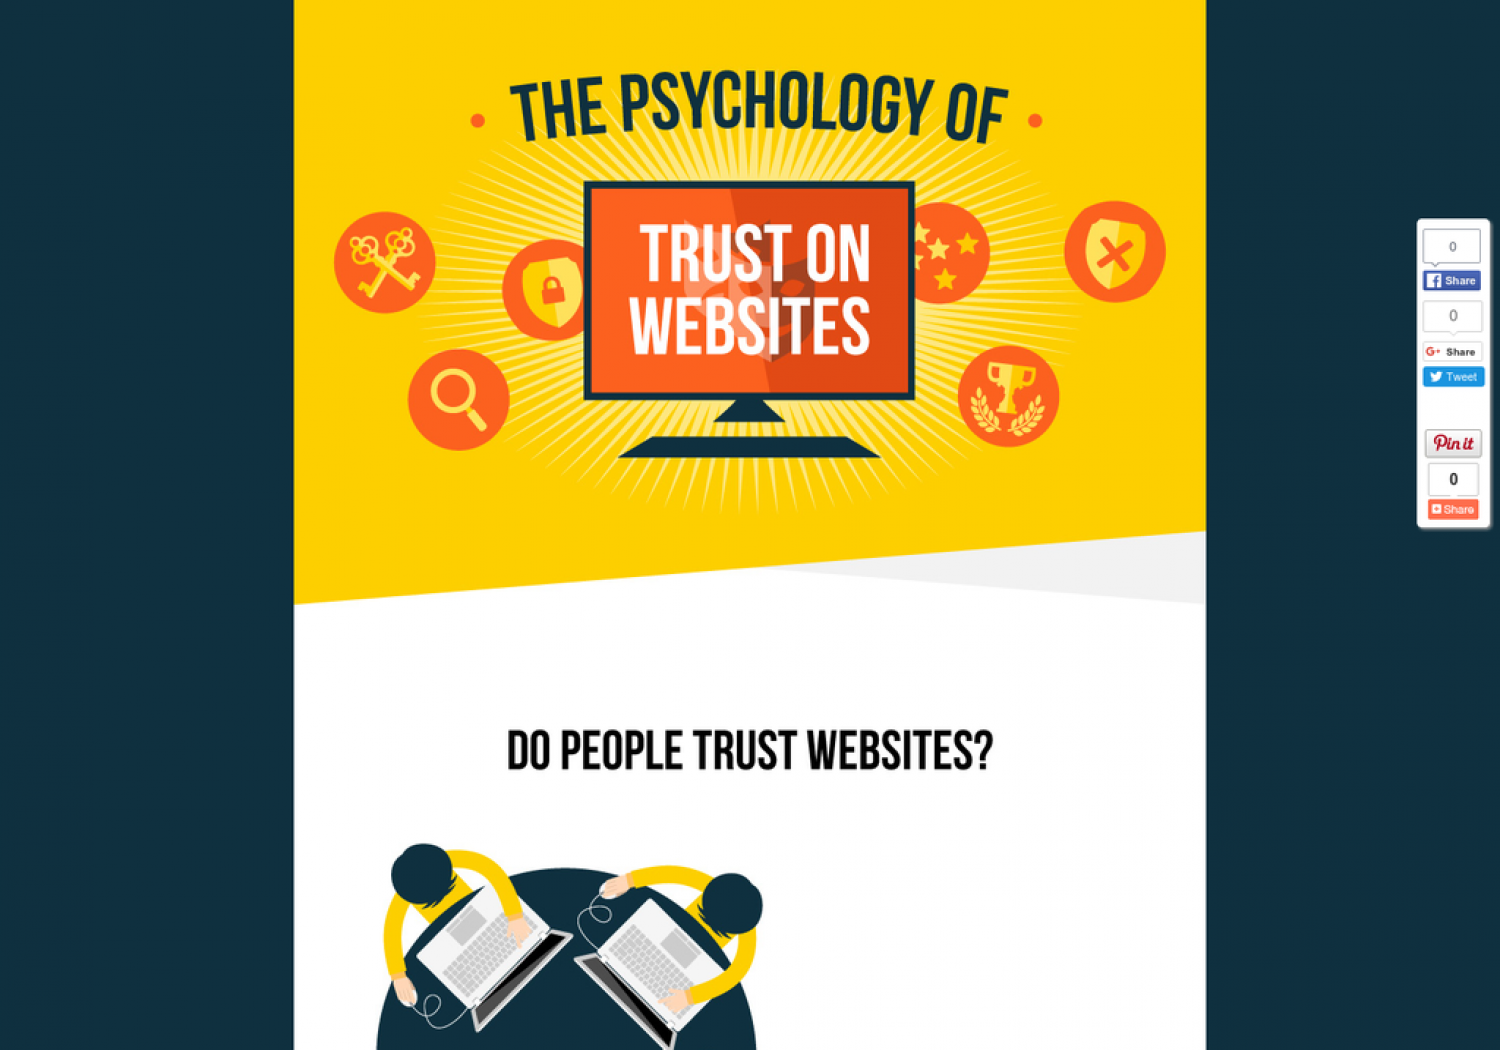 The Psychology of Trust on Websites Infographic